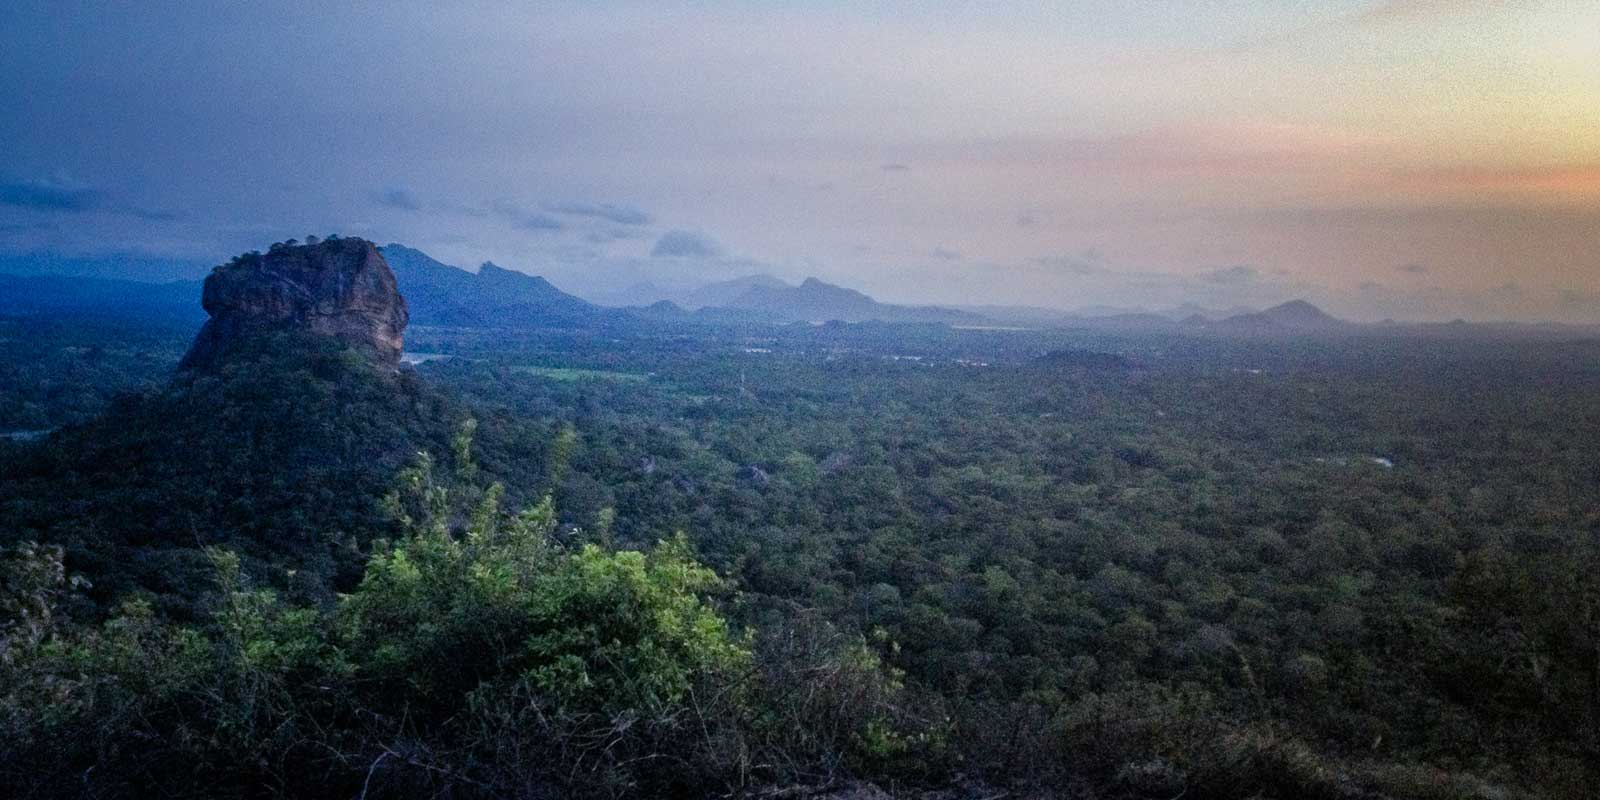 View from the top of Pidurangala Rock at sunset with lots of green trees and Sigiriya Rock in the distance.